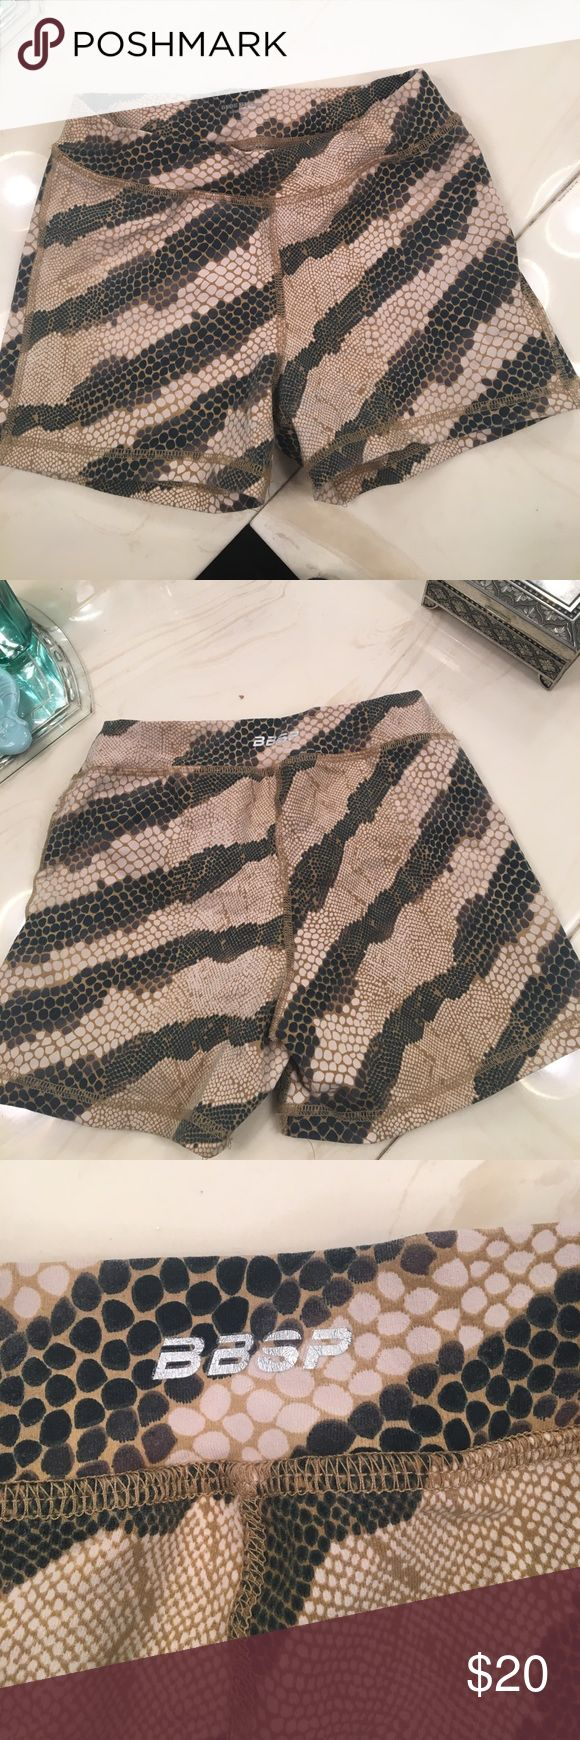 """Bebe sport snake skin booty shorts Bebe workout shorts great for running, crossfit....  just slightly faded. Price is reduced for it. Still in great condition. 2.5"""" inseam bebe Shorts"""